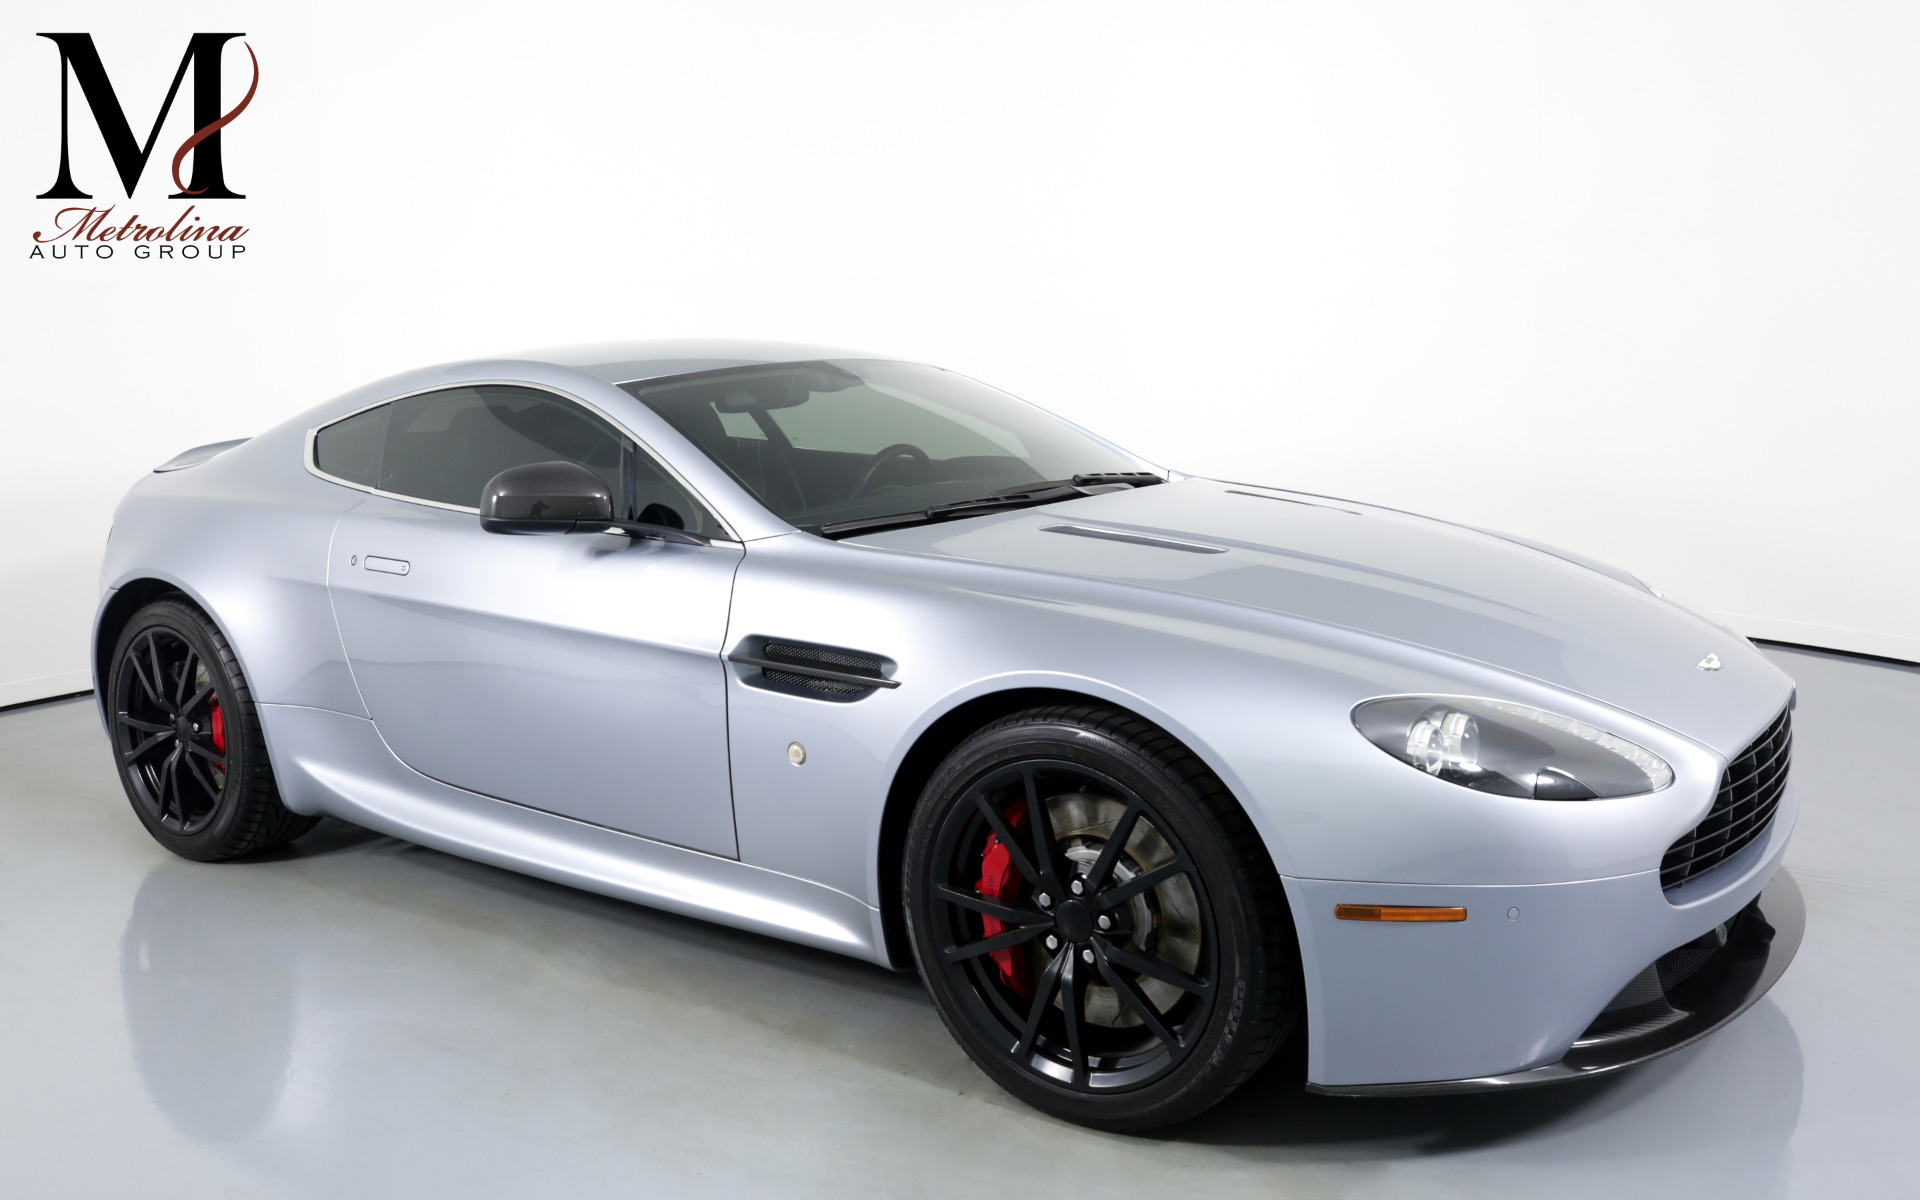 Used 2014 Aston Martin V8 Vantage for sale $49,996 at Metrolina Auto Group in Charlotte NC 28217 - 1